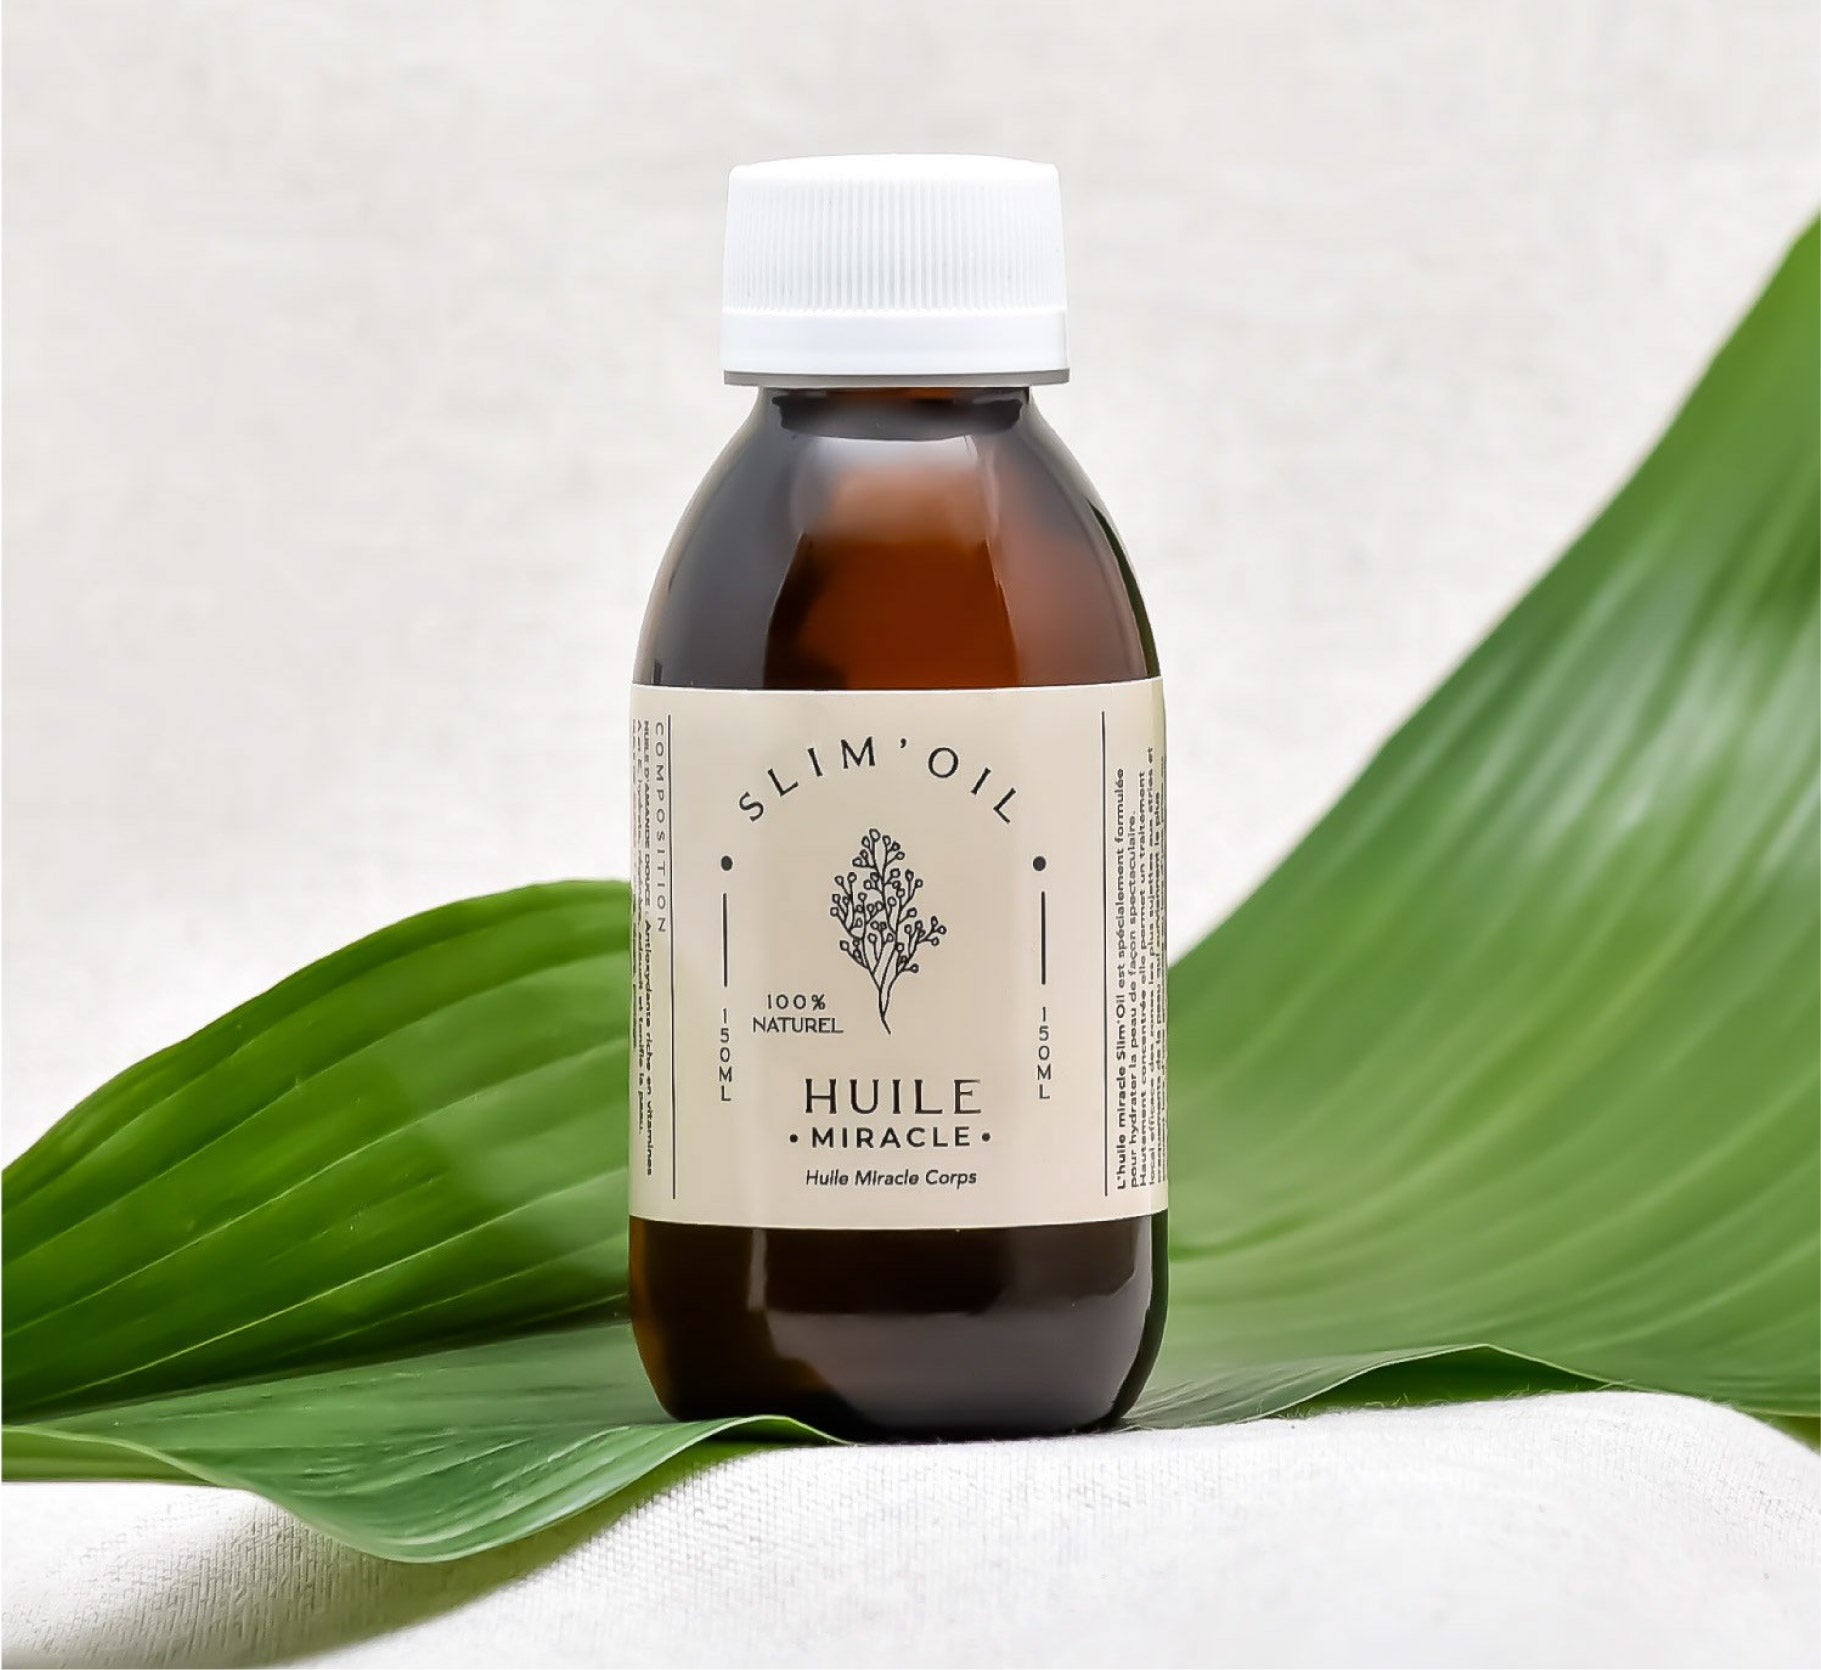 Huile Miracle anti-cellulite